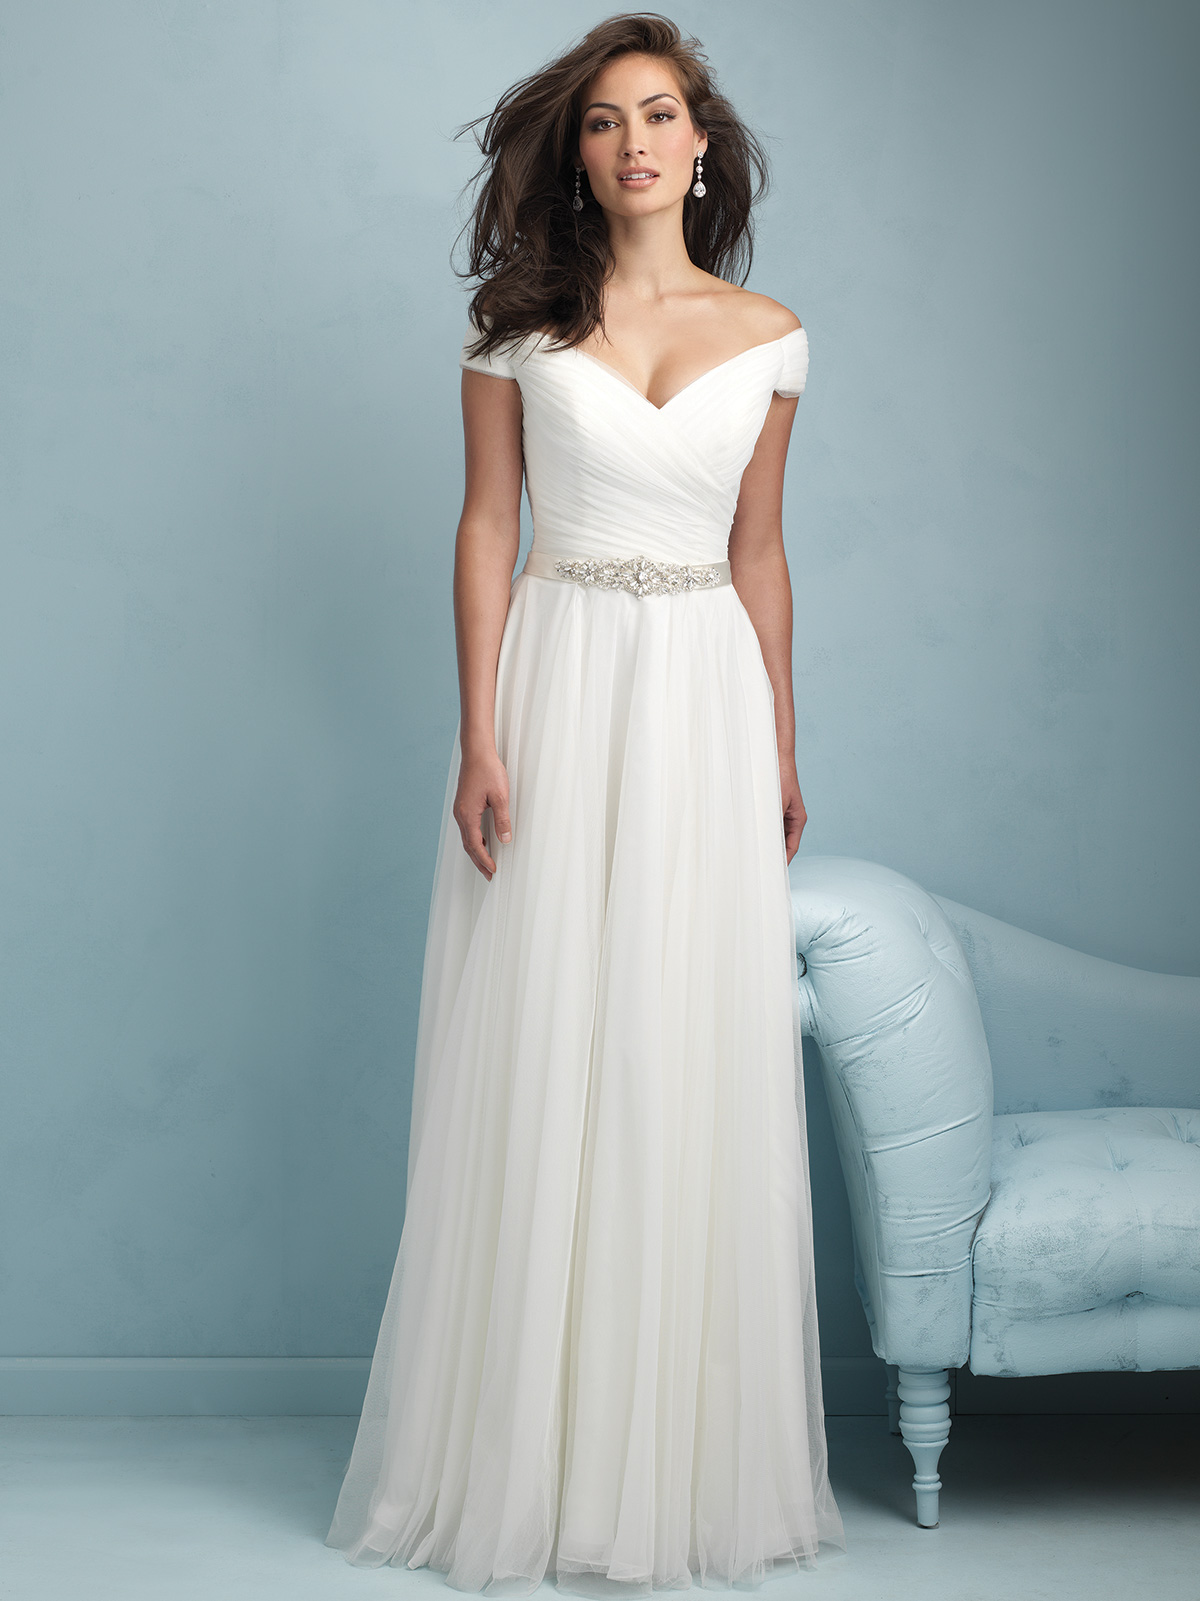 Allure Bridal Dress 9211: DimitraDesigns.com